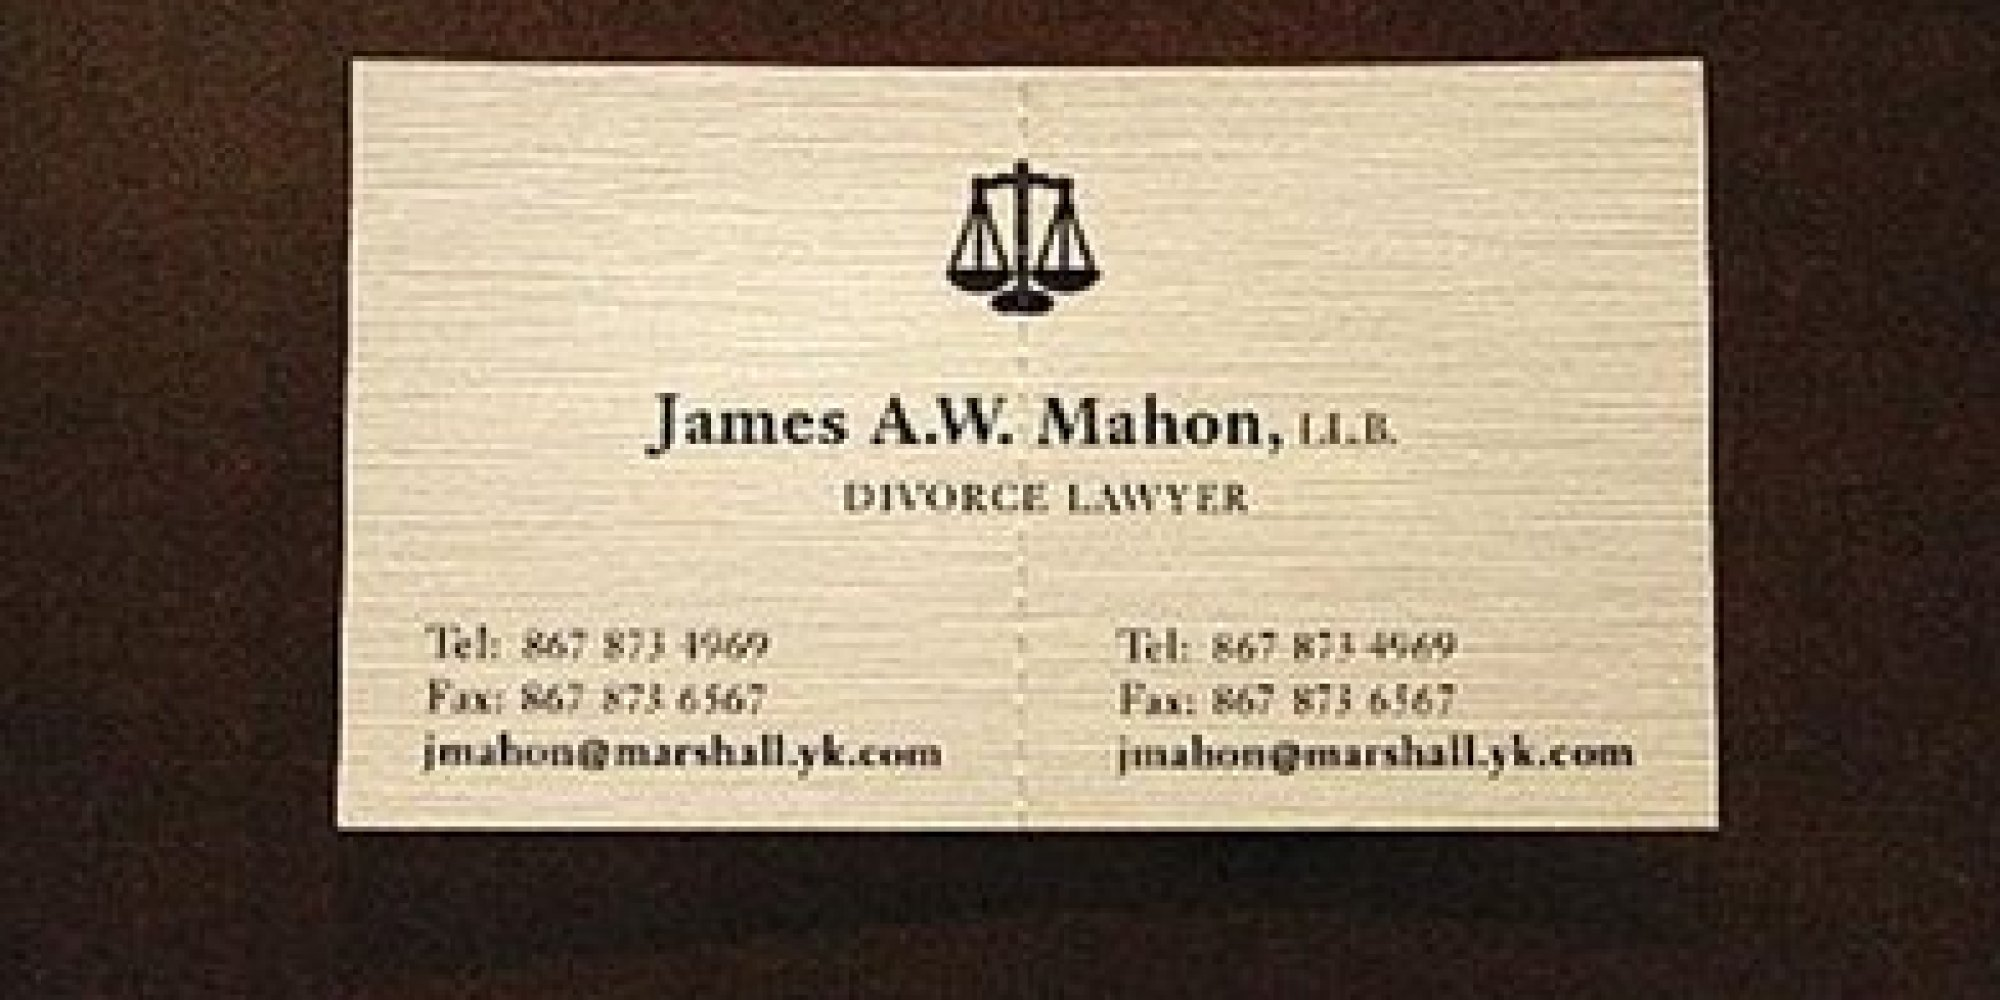 Divorce Attorney S Business Card Is Not What It Seems Photo Huffpost